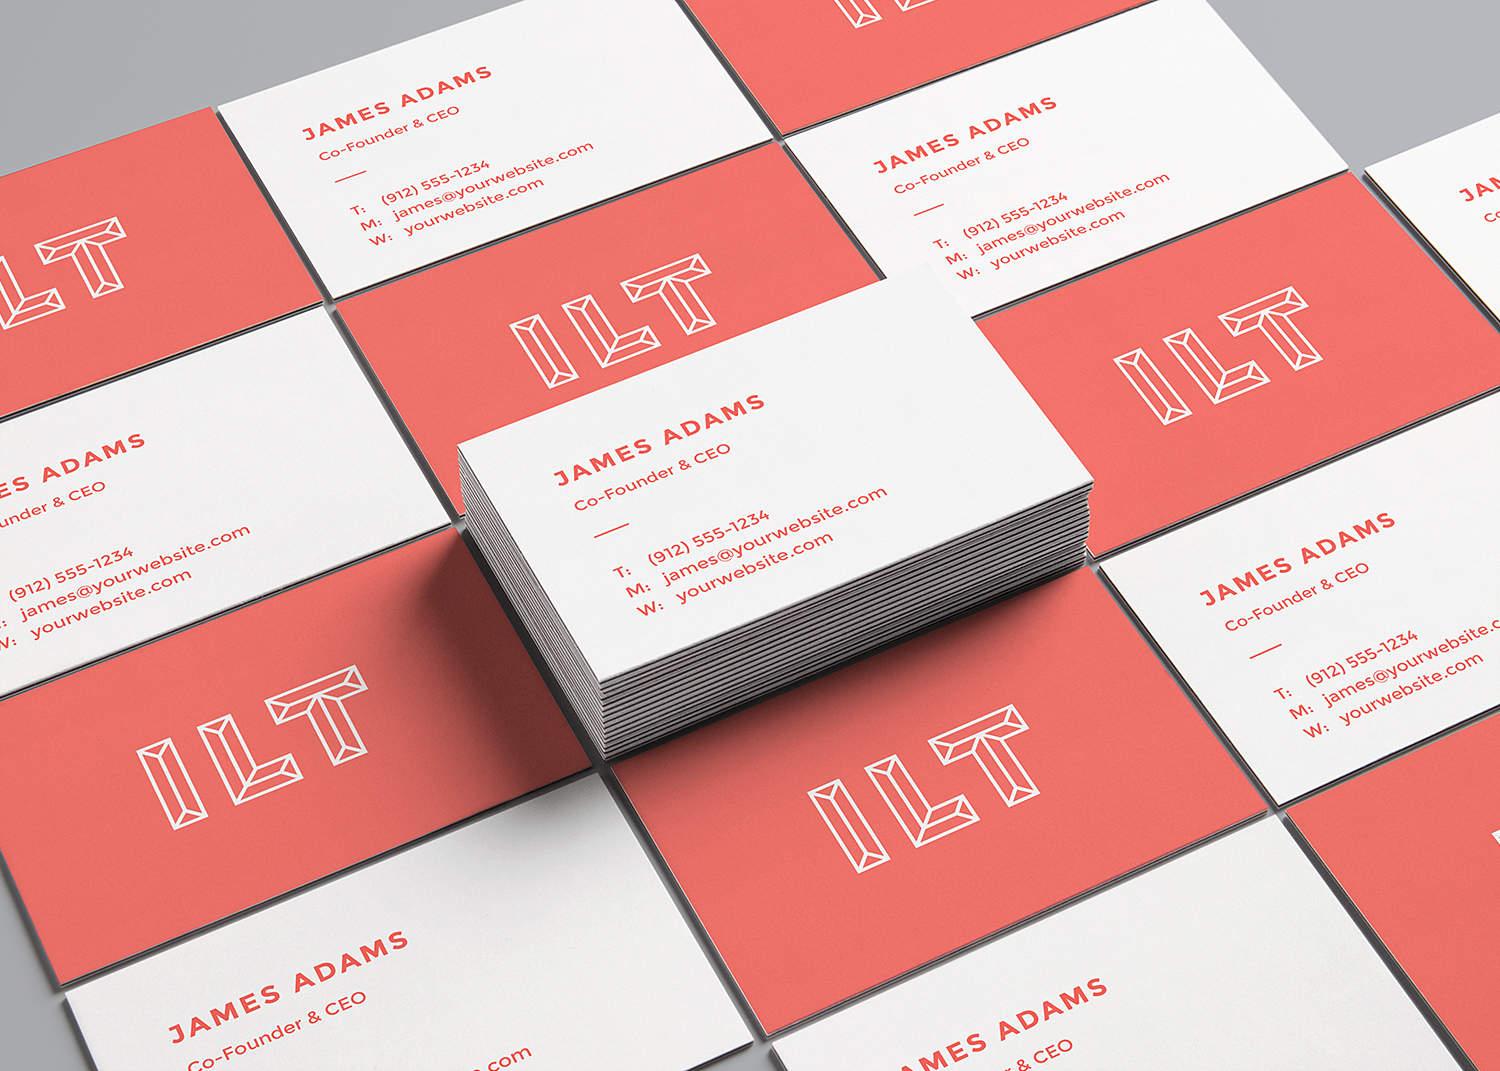 Perspective Business Cards Mockup Vol. 2